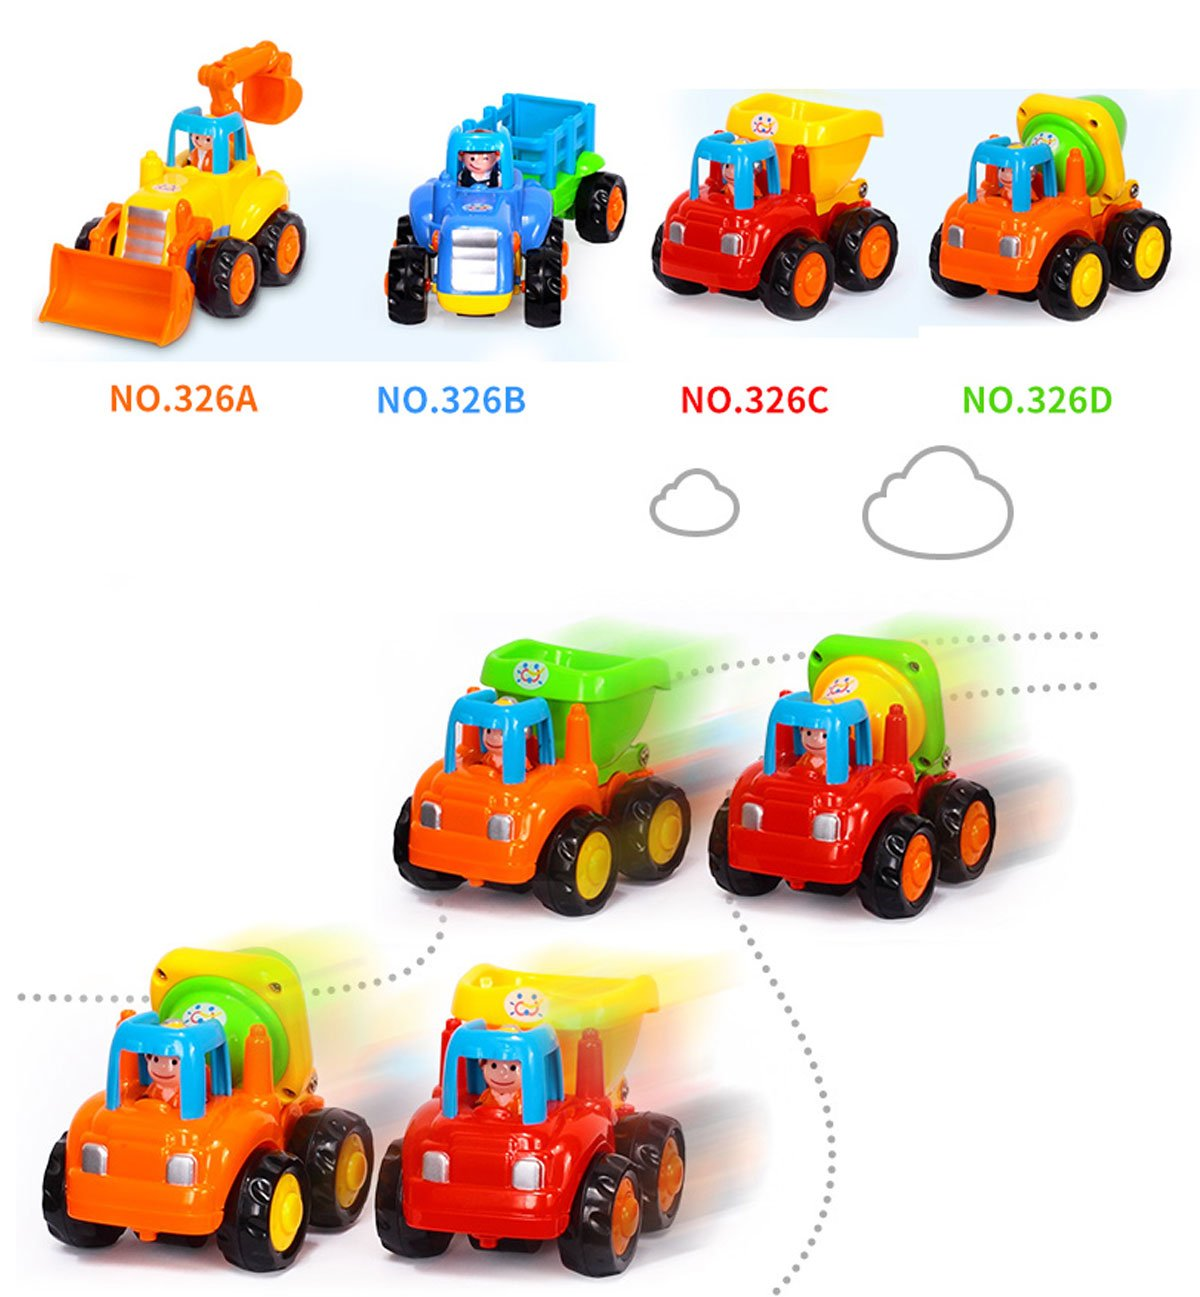 Toy Sets For Boys : D mcark early educational toddler baby toy push and go